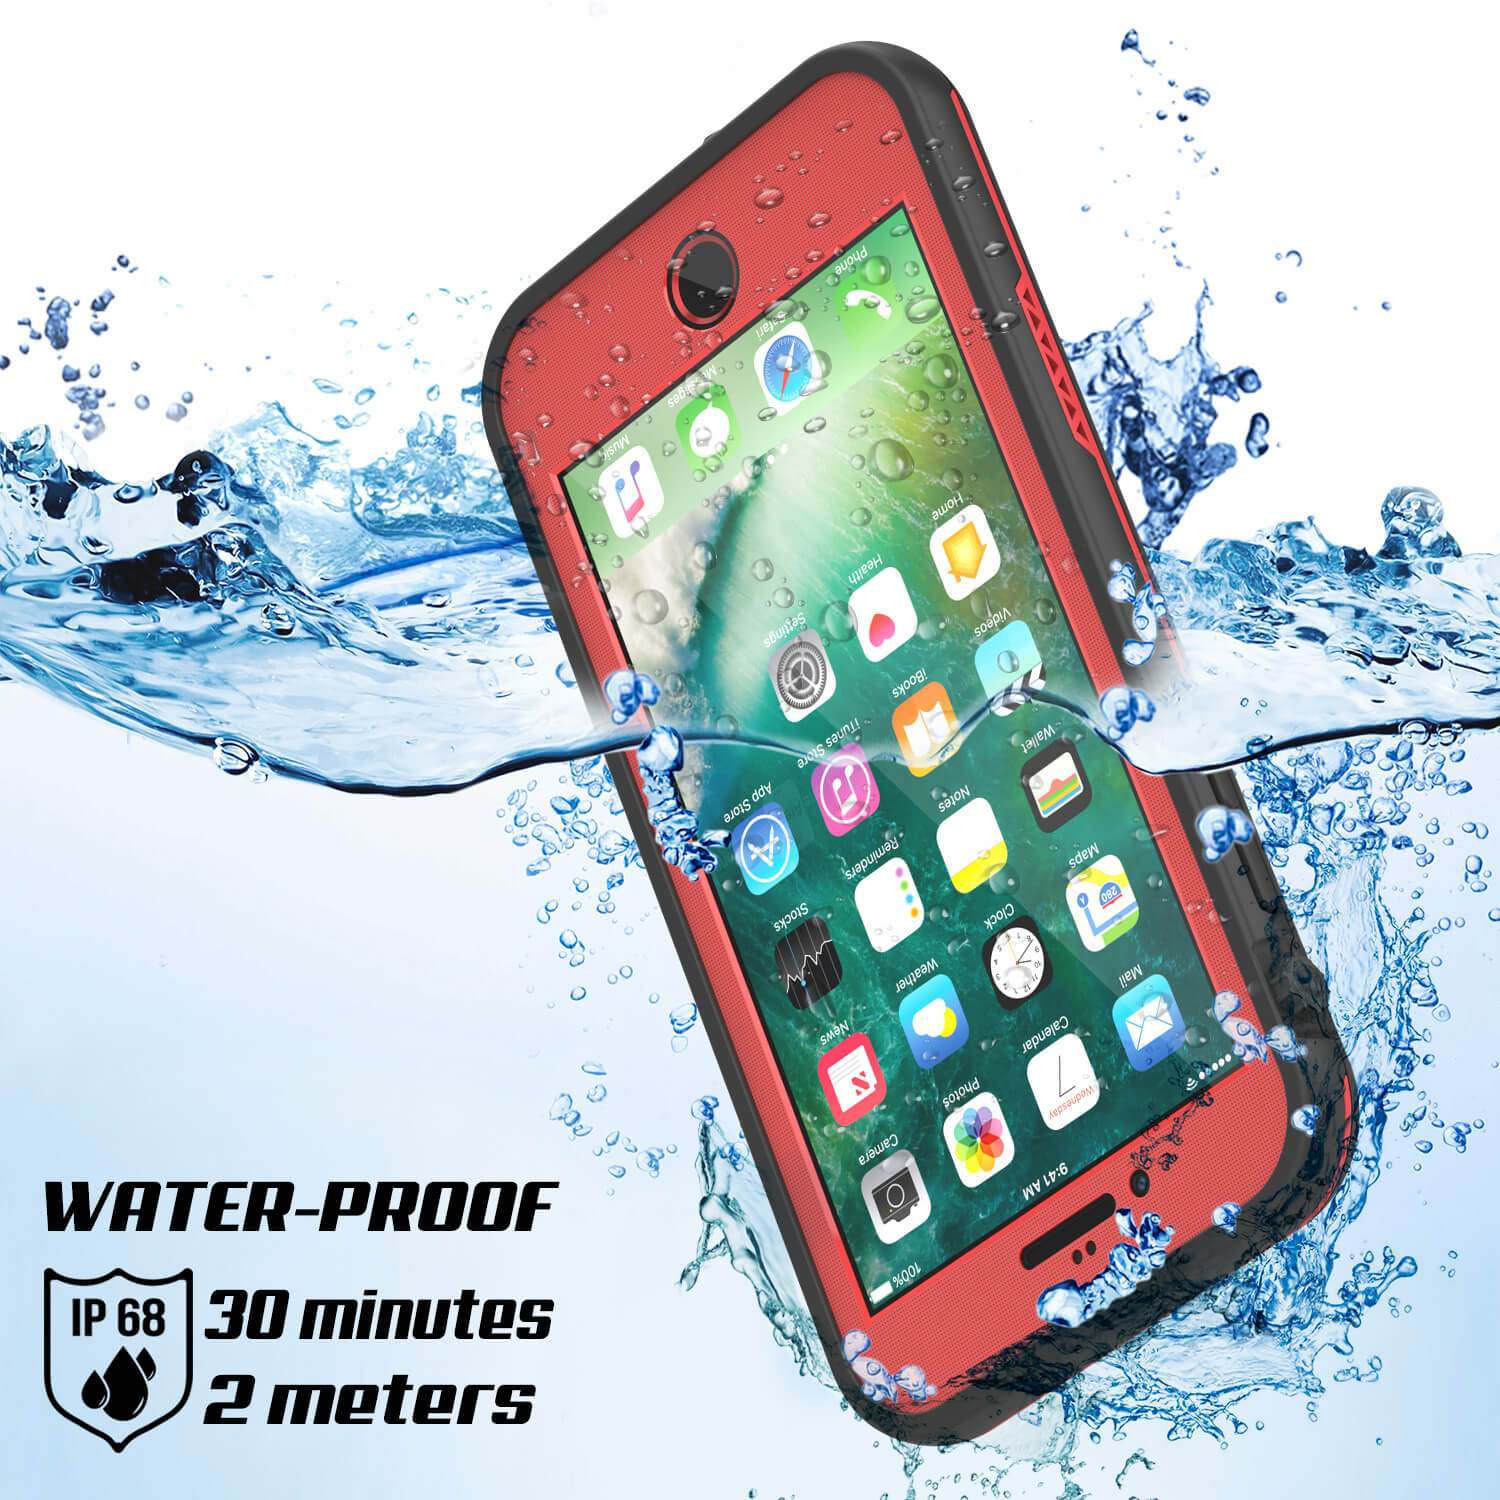 iPhone 7+ Plus Waterproof Case, Punkcase SpikeStar Red Series | Thin Fit 6.6ft Underwater IP68